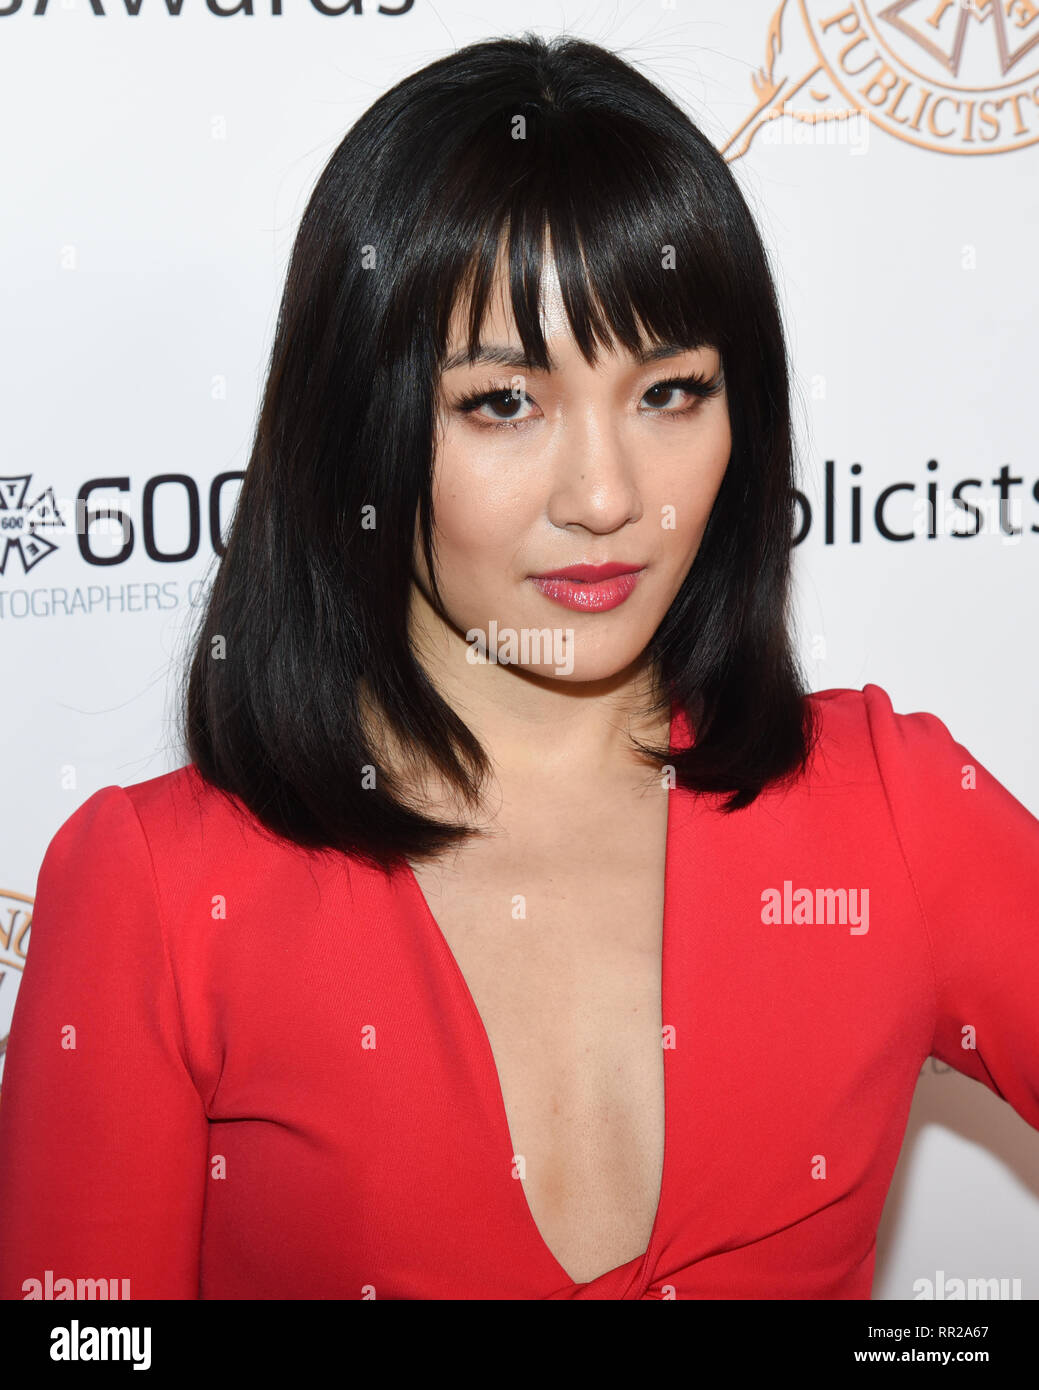 CONSTANCE WU attends the 56th Annual ICG Publicist Awards at The Beverly Hilton Hotel in Beverly Hills, California. 22nd Feb, 2019. Credit: Billy Bennight/ZUMA Wire/Alamy Live News Stock Photo